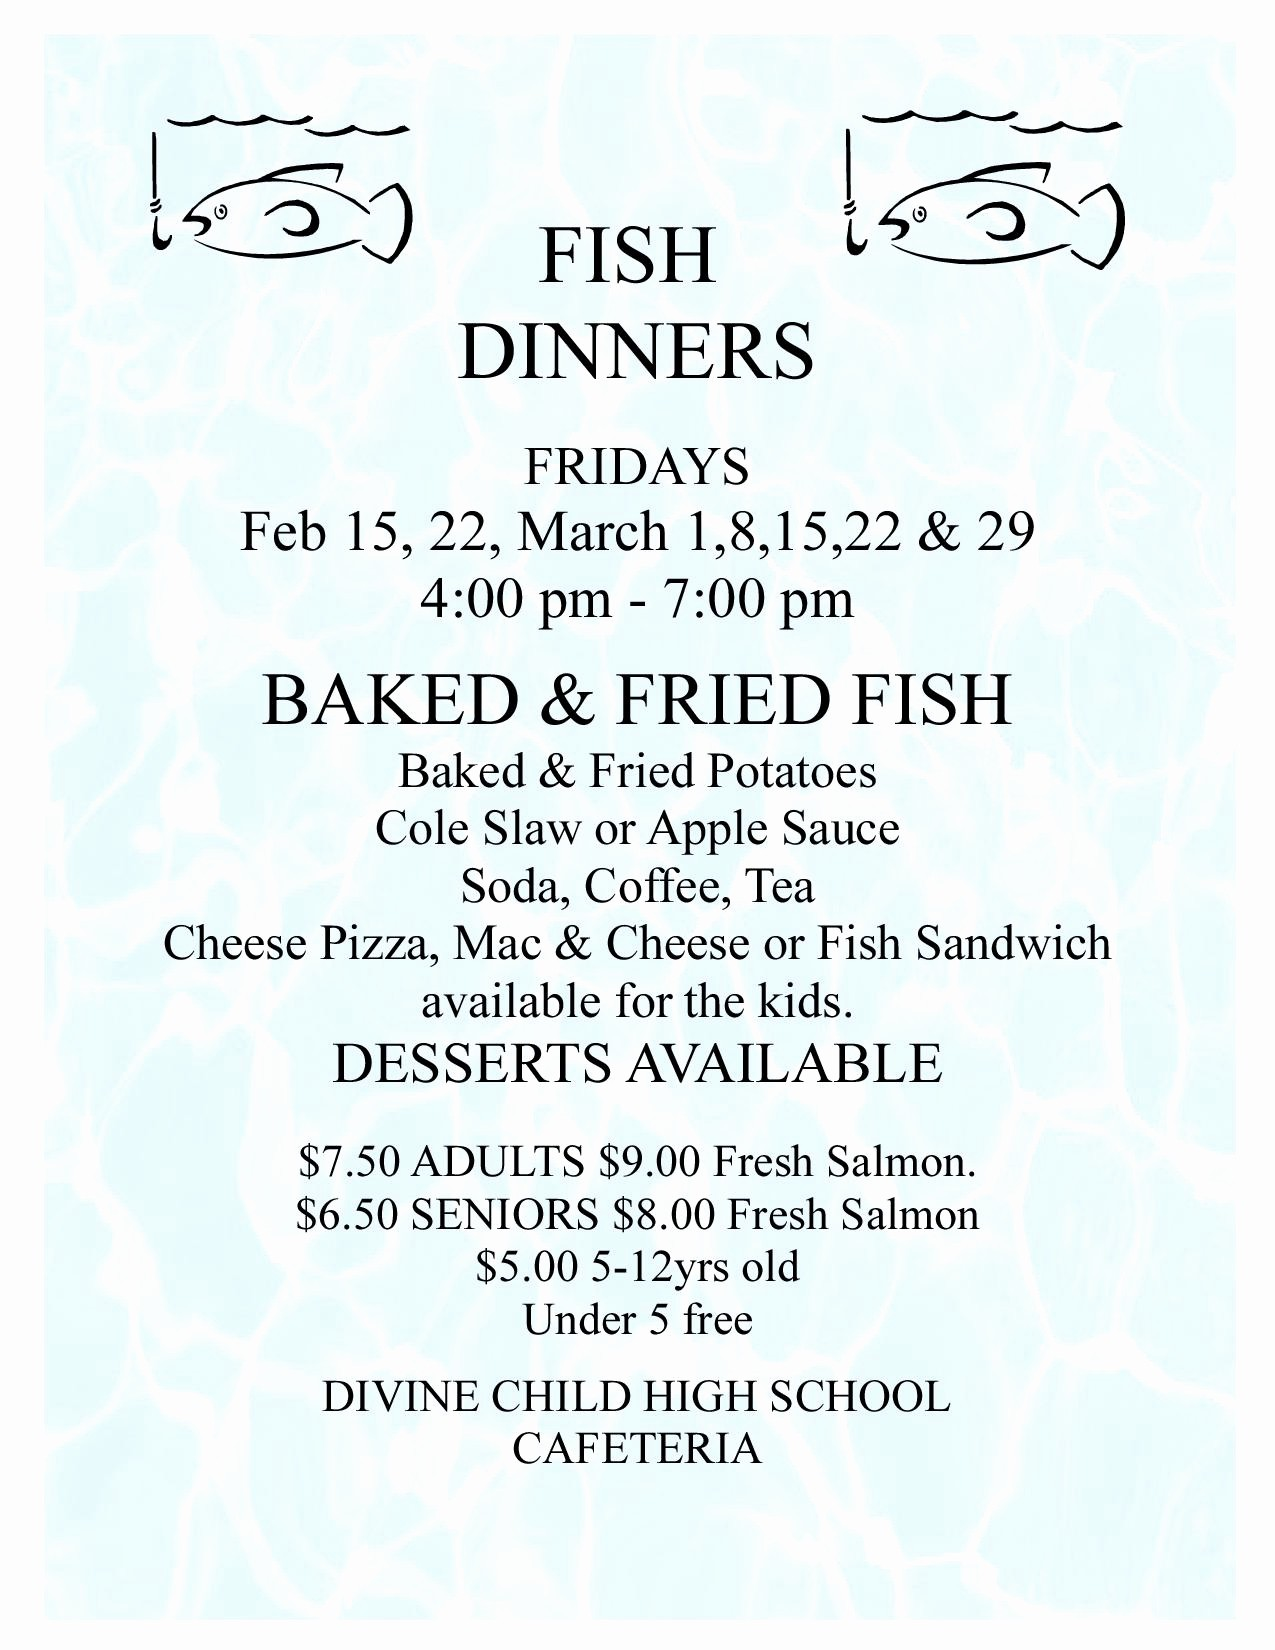 Free Fish Fry Flyer Templates Beautiful 12 Best S Of Sample Flyers for Selling Dinners soul